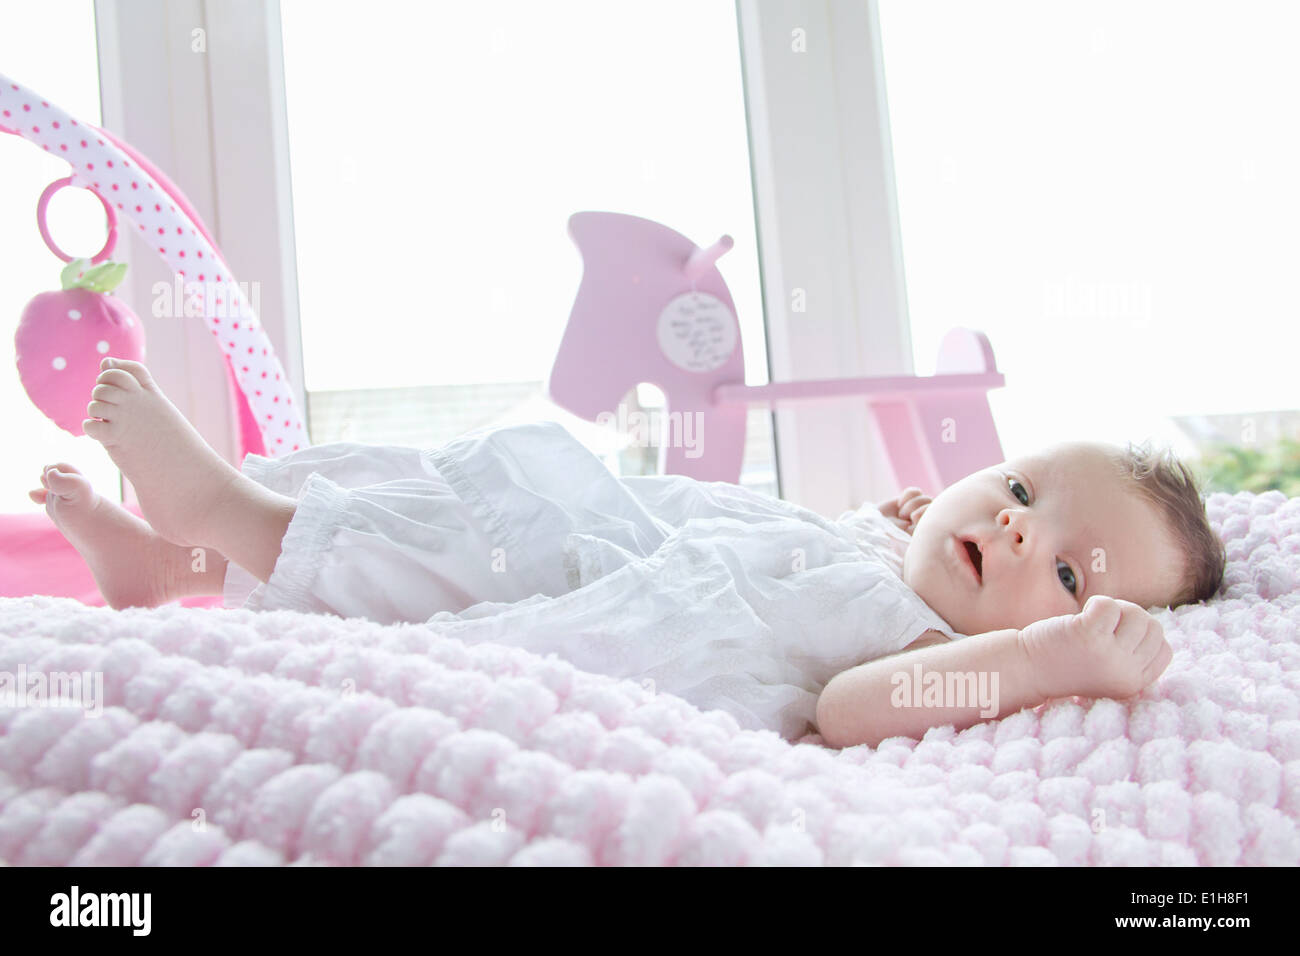 Baby girl lying in bed - Stock Image